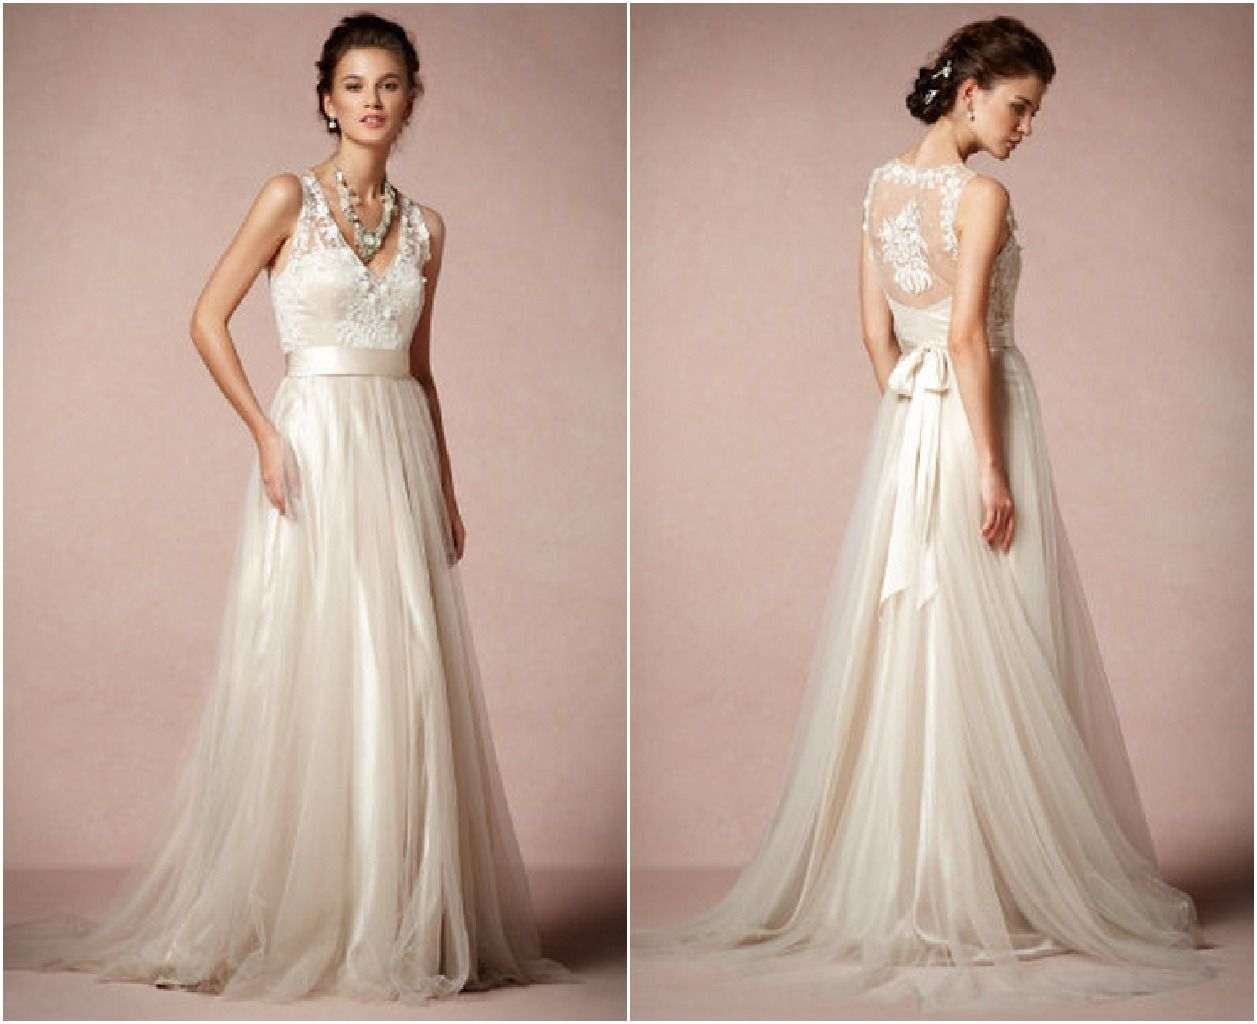 Romantic Wedding Dresses | Boda, Vestiditos y Novios